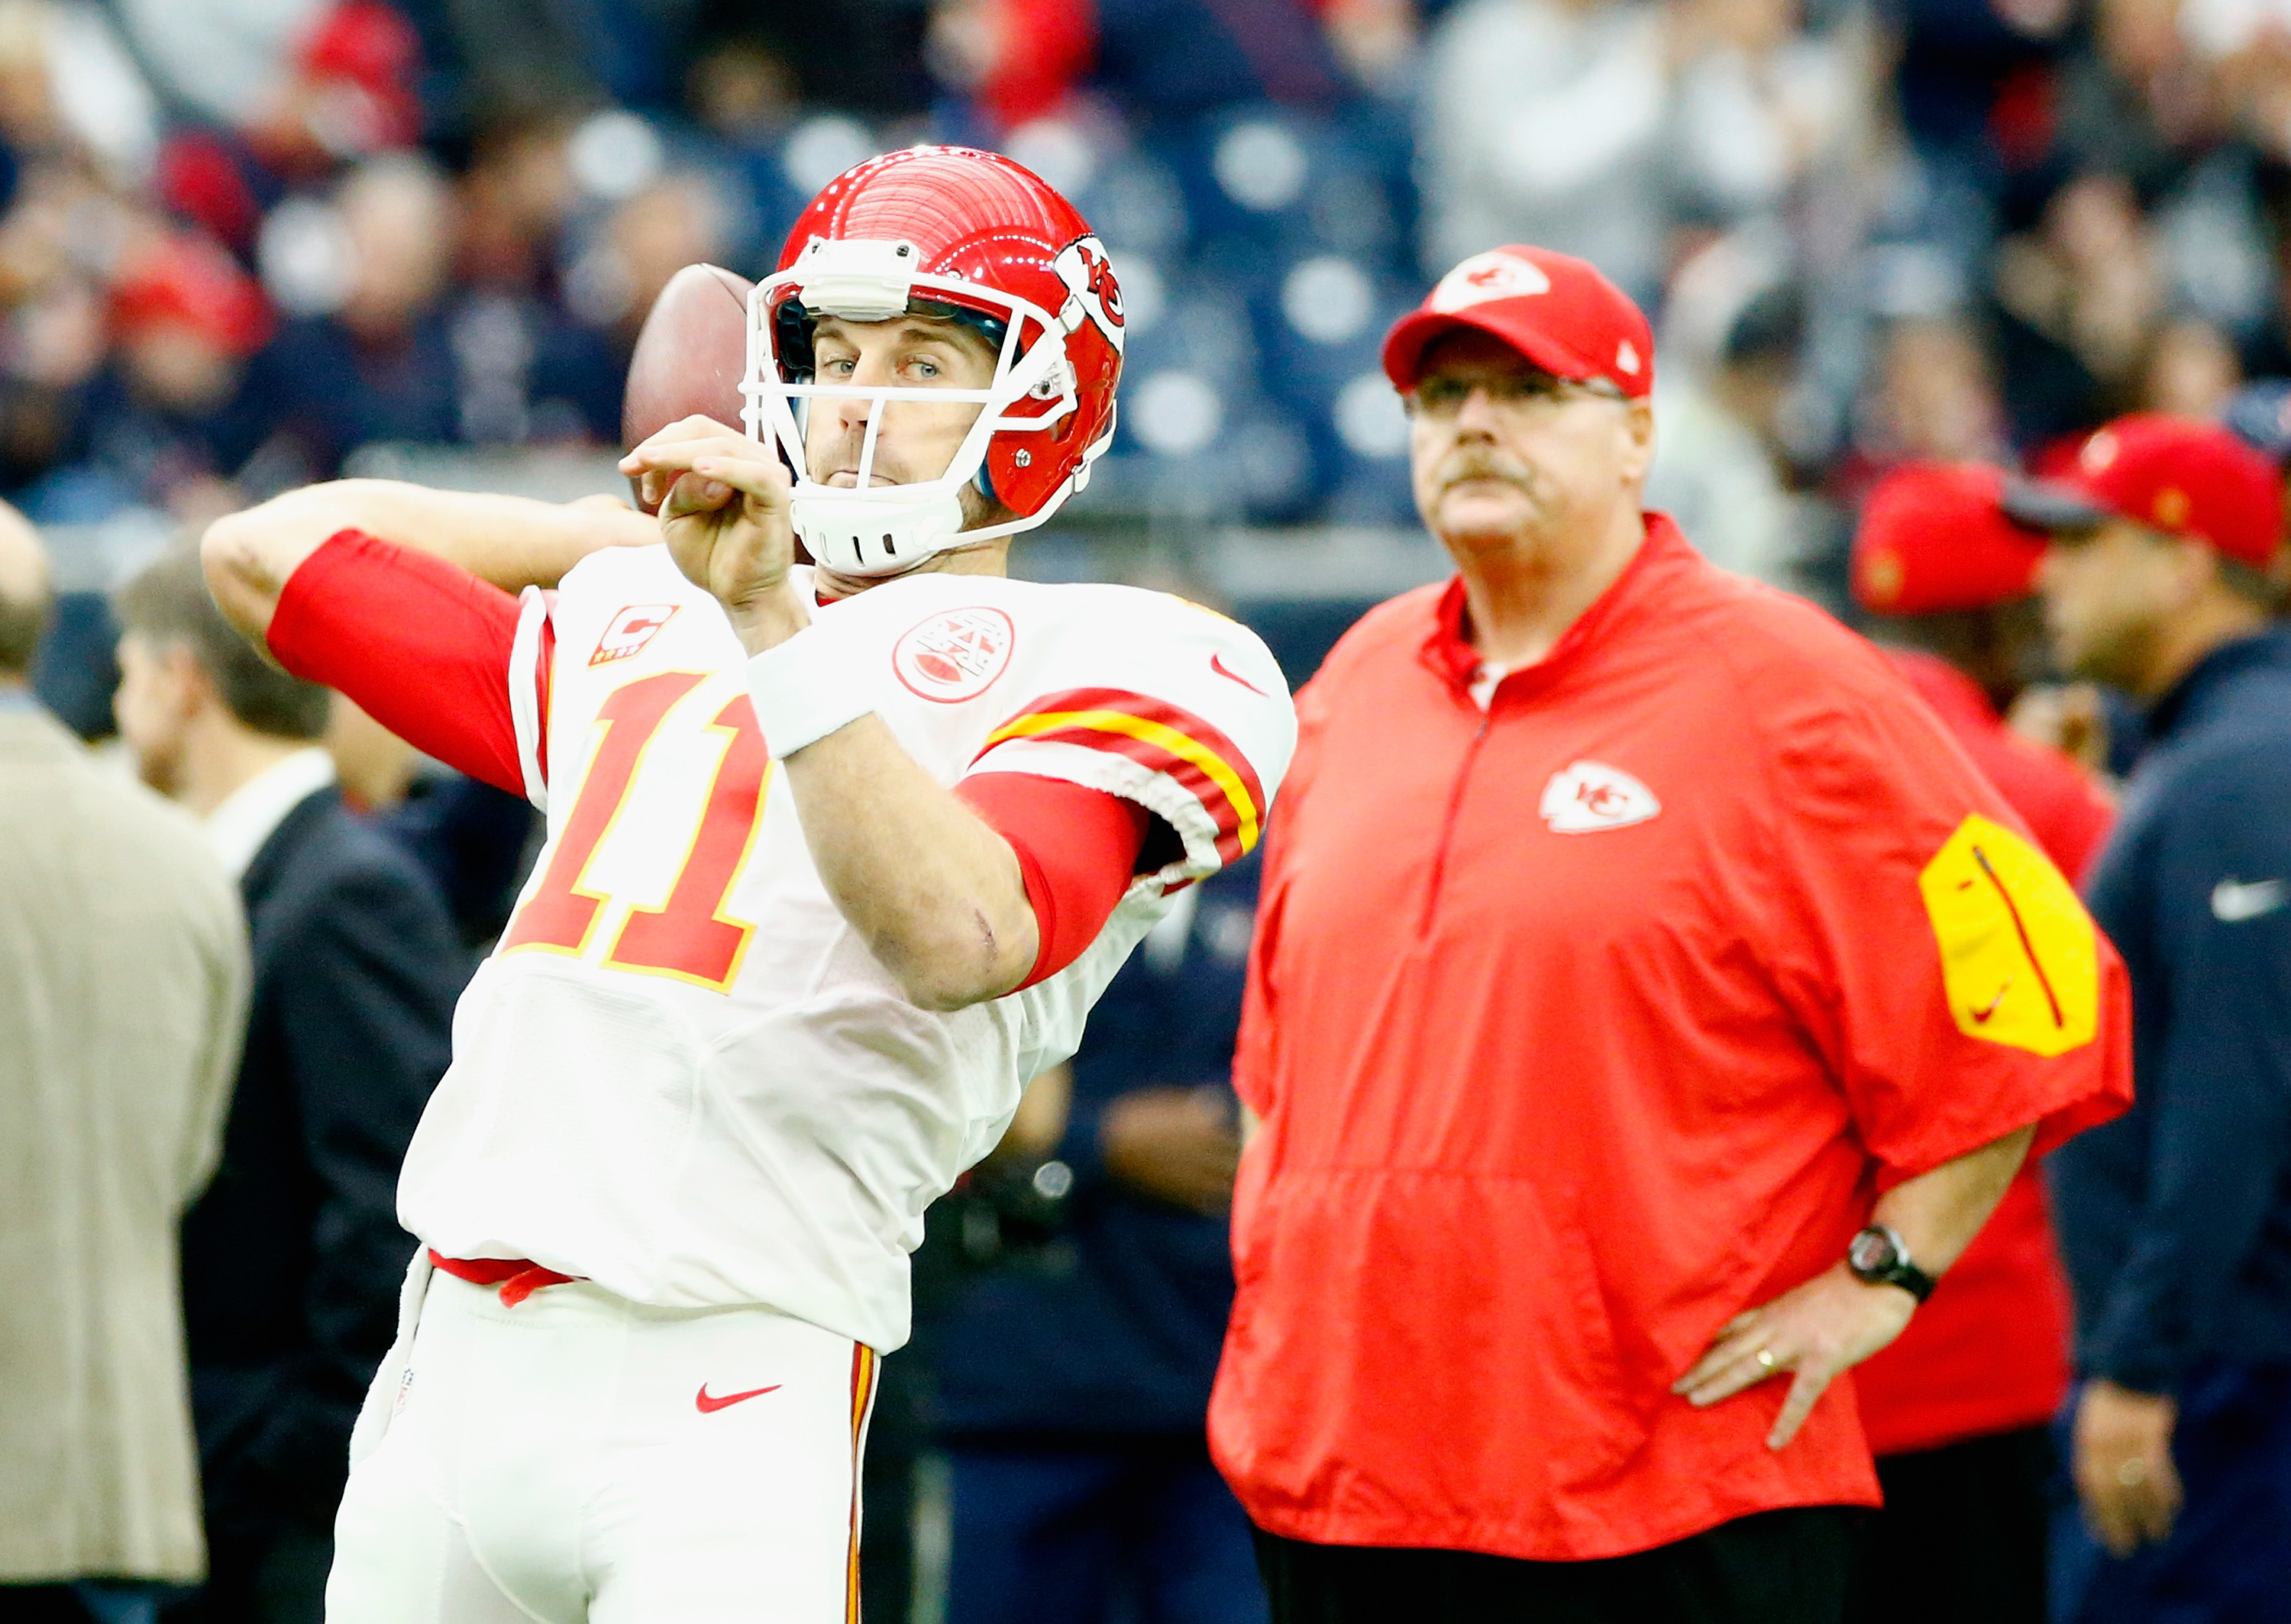 Quarterback Alex Smith of the Kansas City Chiefs looks to pass as head coach Andy Reid looks on in 2016